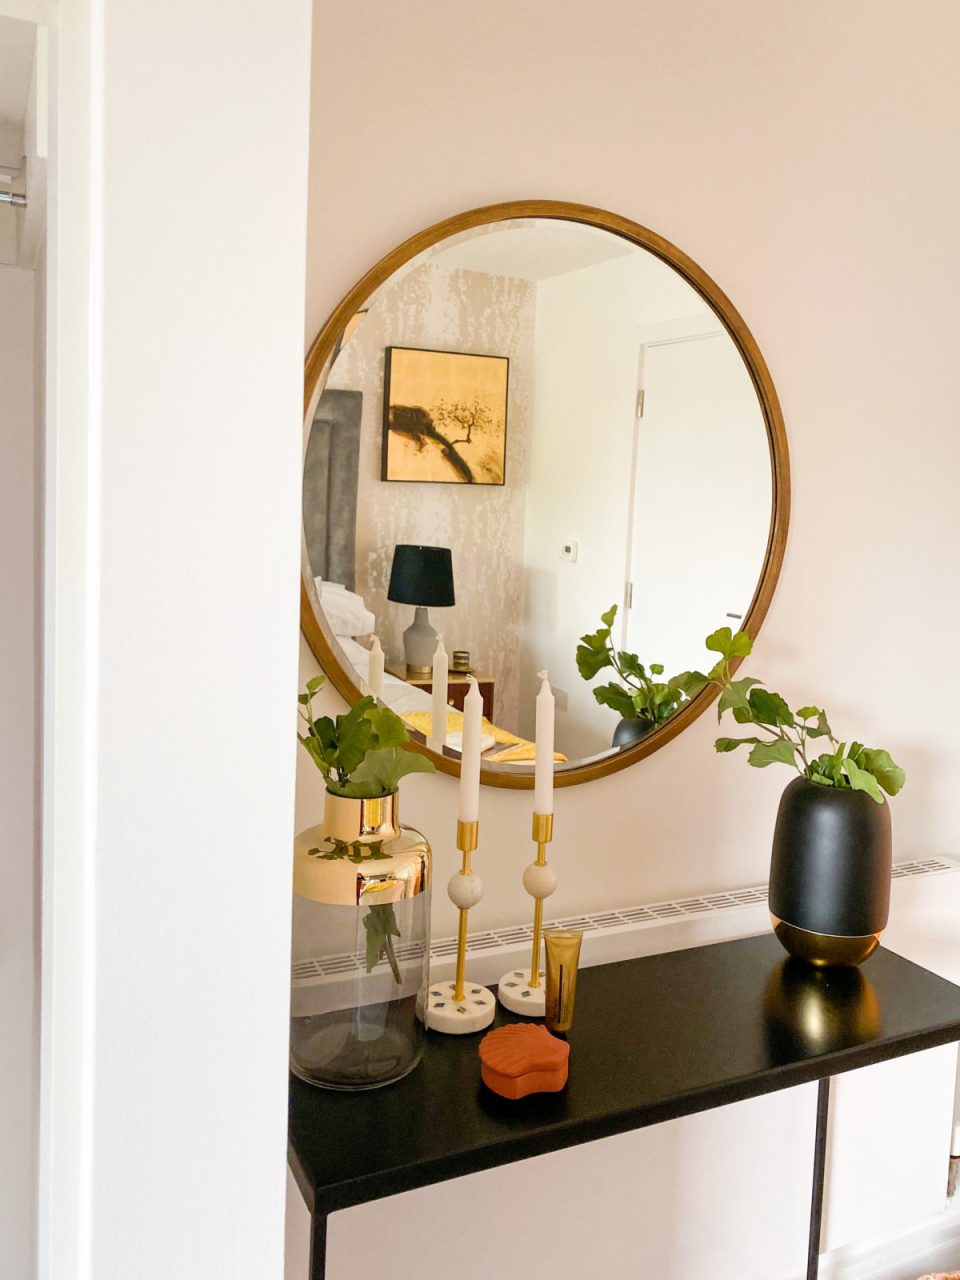 bedroom console table with candlesticks, vases and large mirror